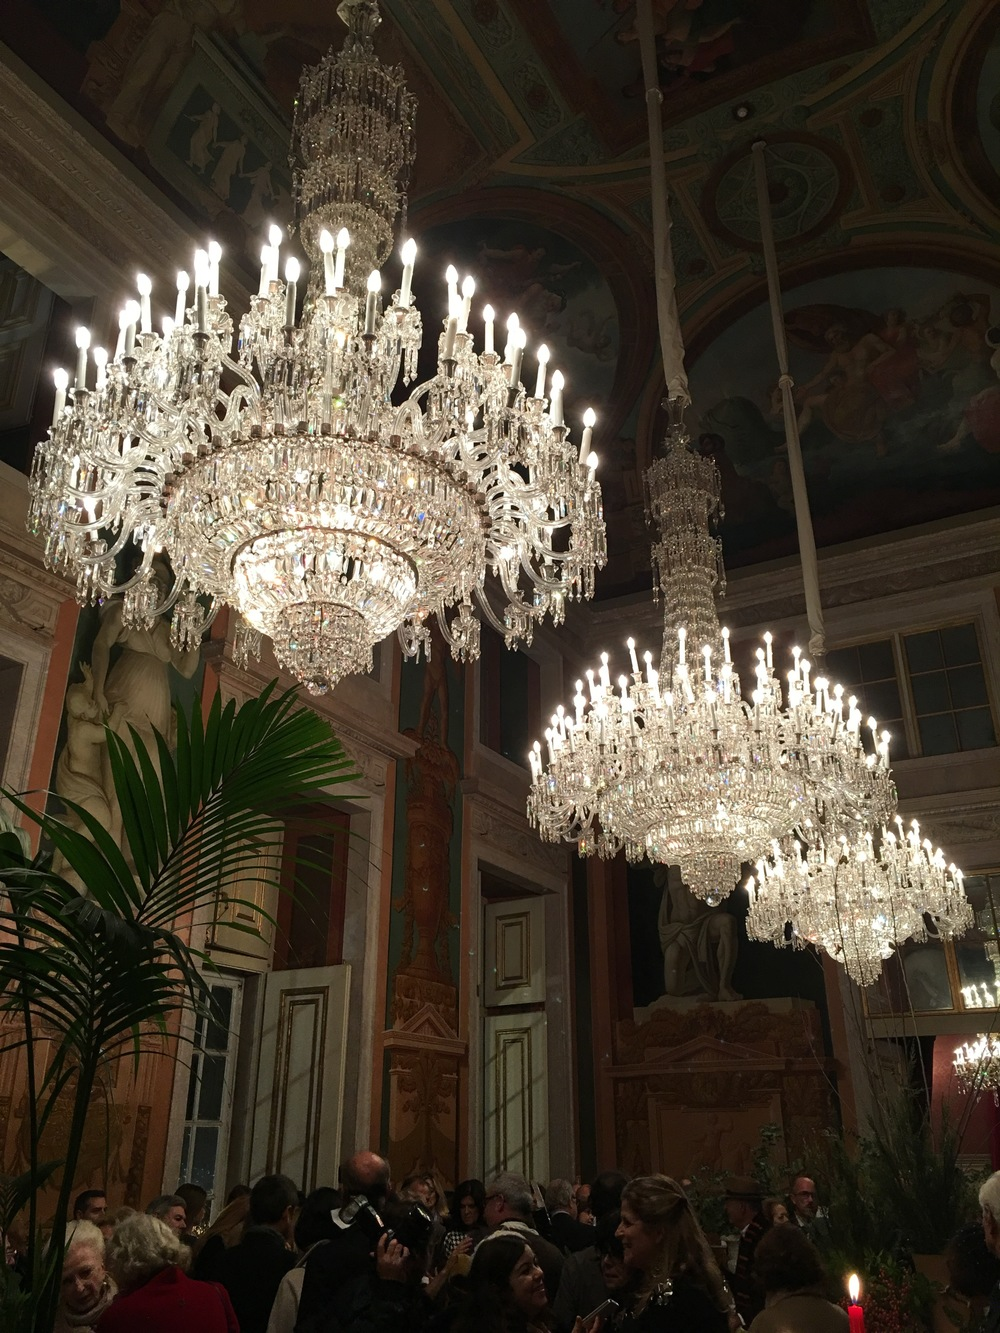 The three grand chandeliers in the hall.